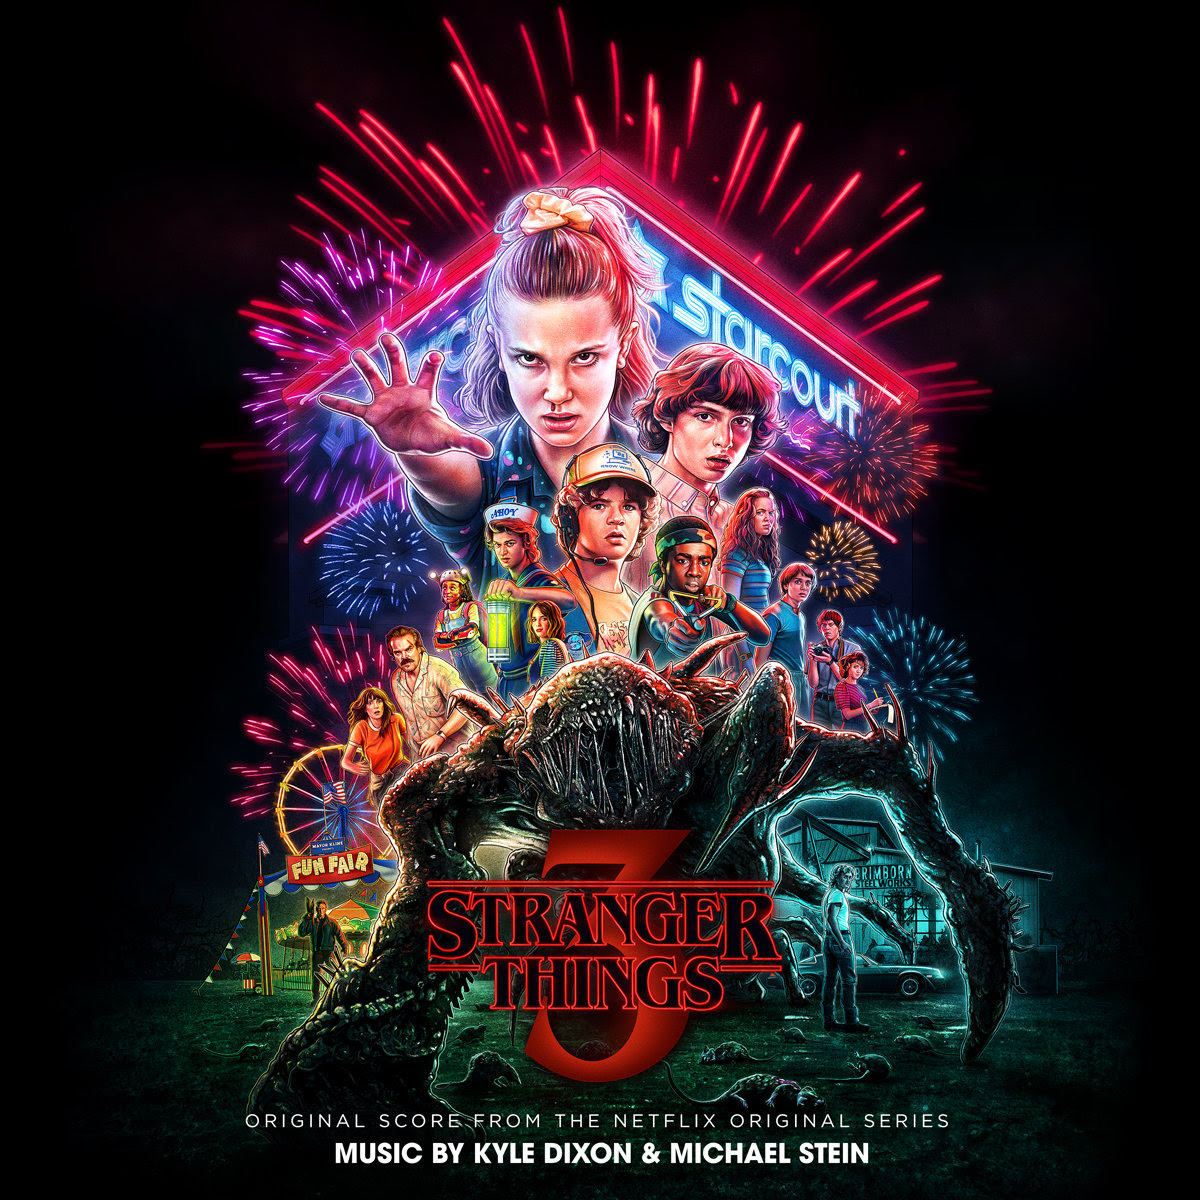 unnamed5 - Stranger Things 3 Original Score to Release Digitally Friday!